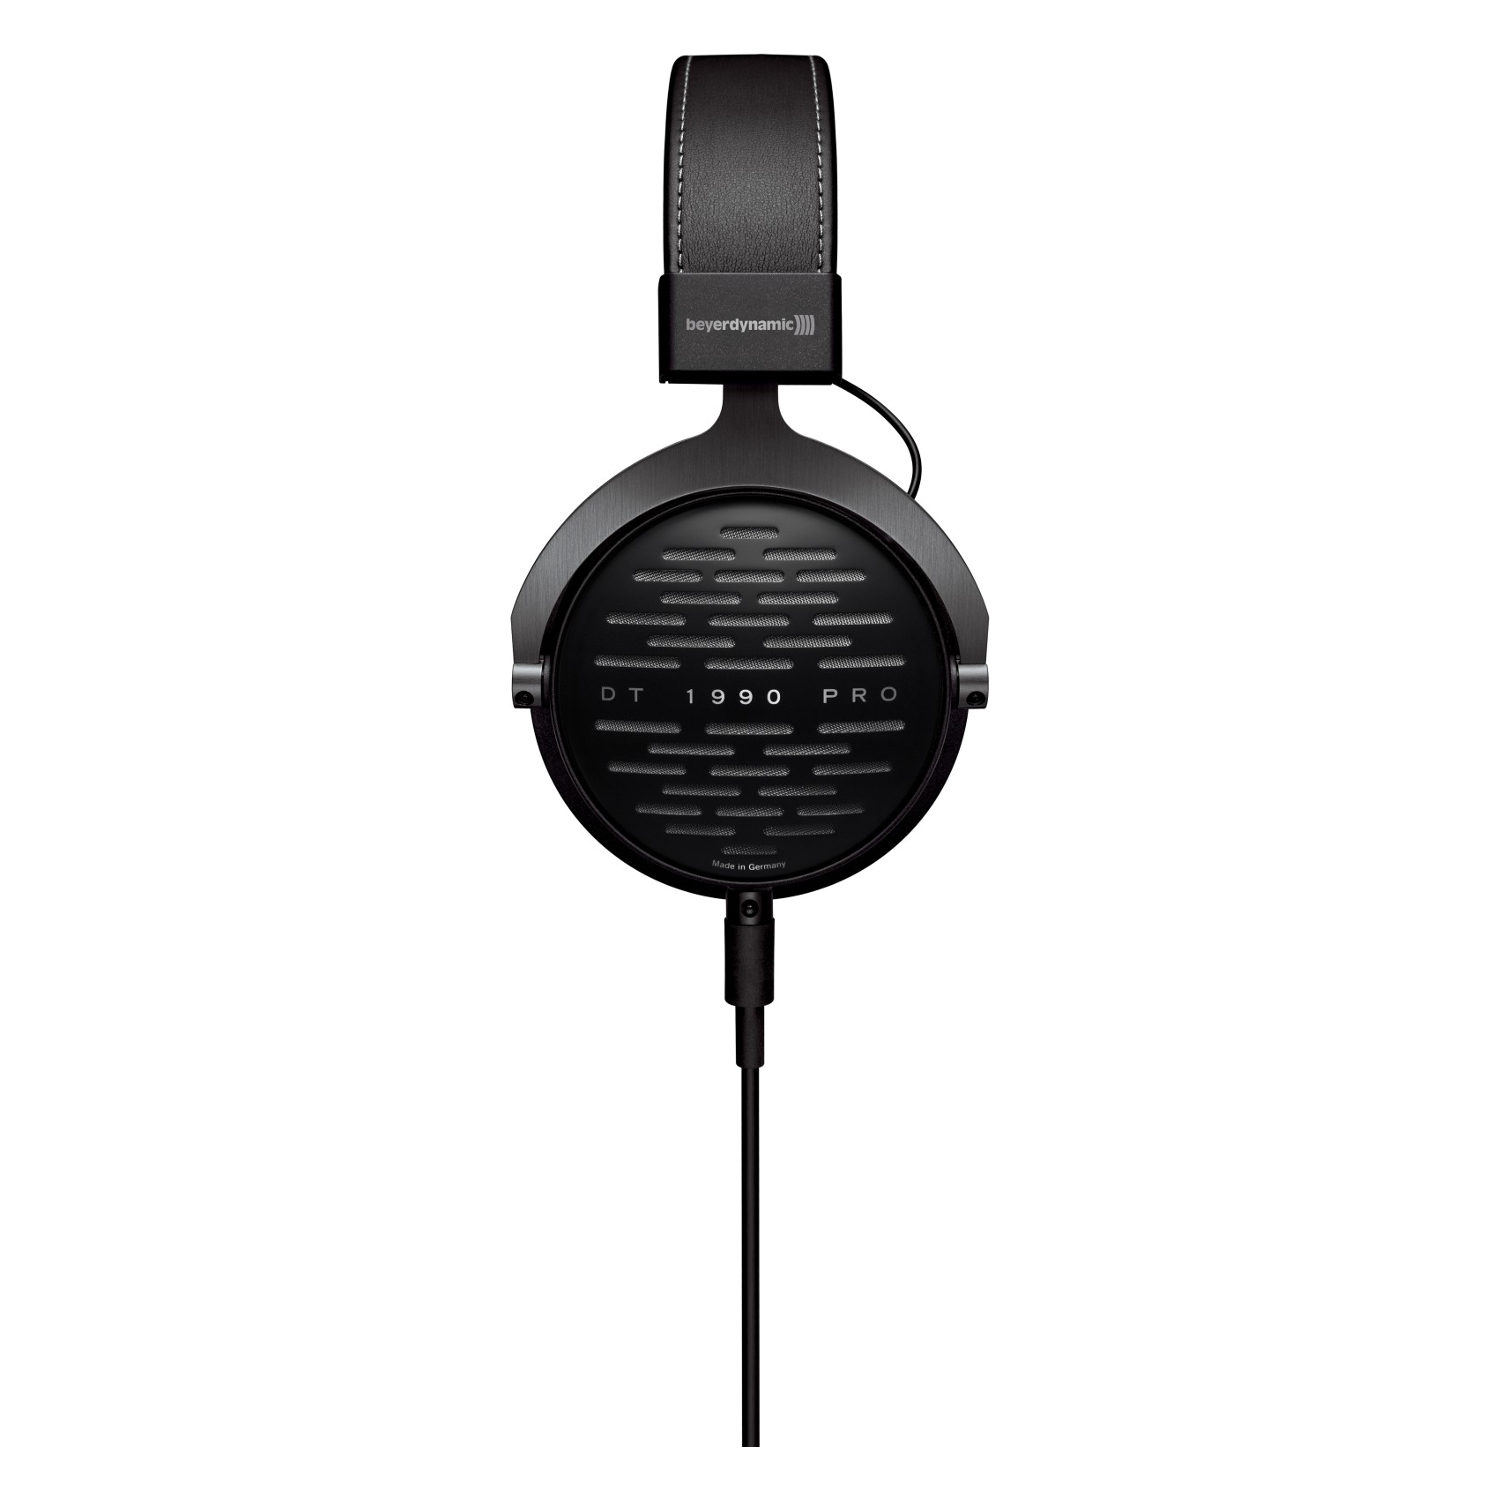 Foto van Beyerdynamic DT 1990 Pro 250 Ohm Over-Ear koptelefoon